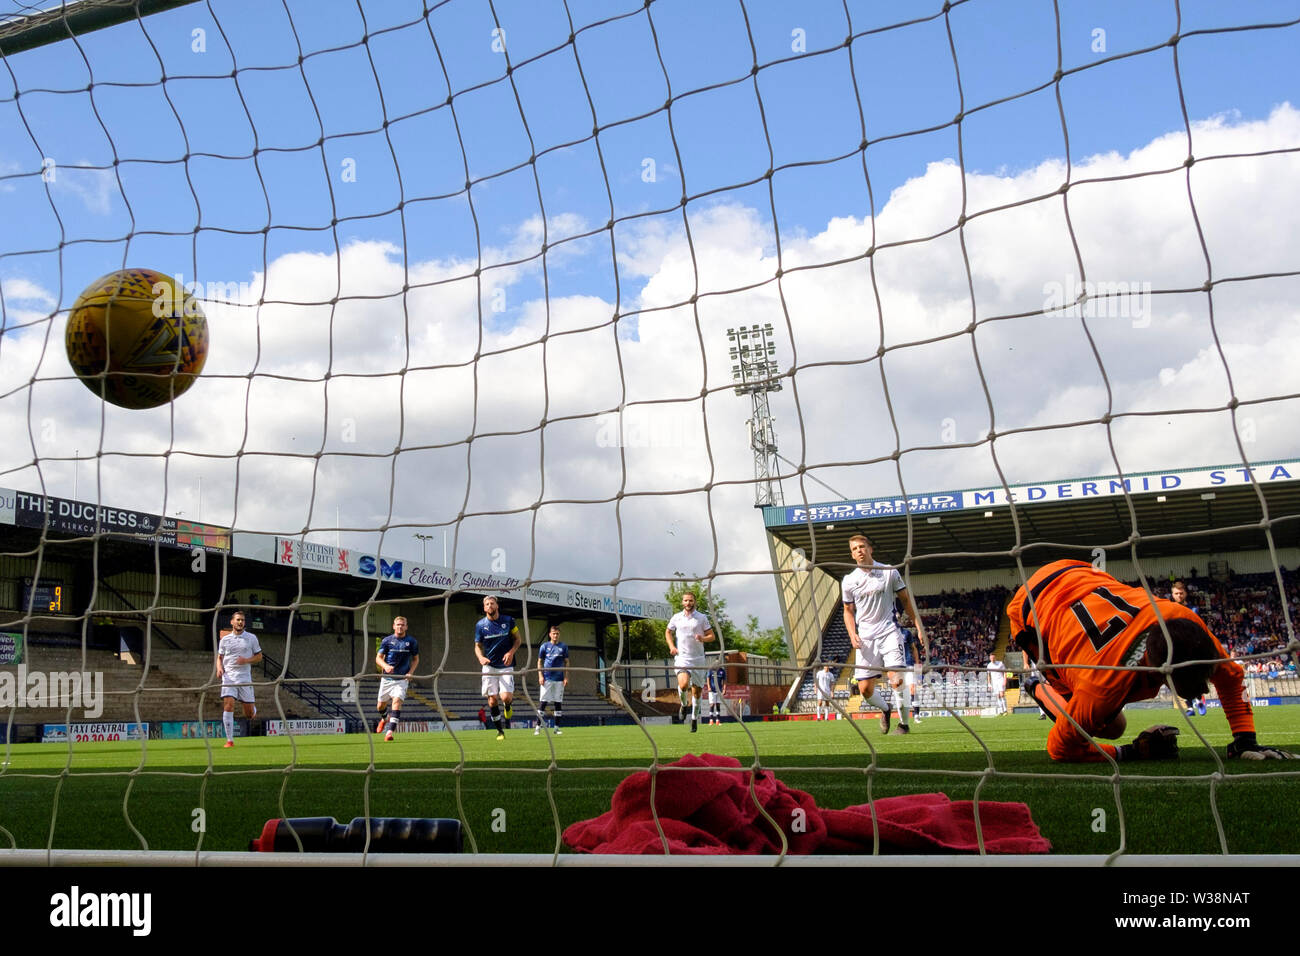 Starks Park, Kirkcaldy, UK. 13th July, 2019. Scottish League Cup football, Raith Rovers versus Dundee; Andrew Nelson of Dundee scores from the penalty spot for 2-0 Credit: Action Plus Sports/Alamy Live News Stock Photo